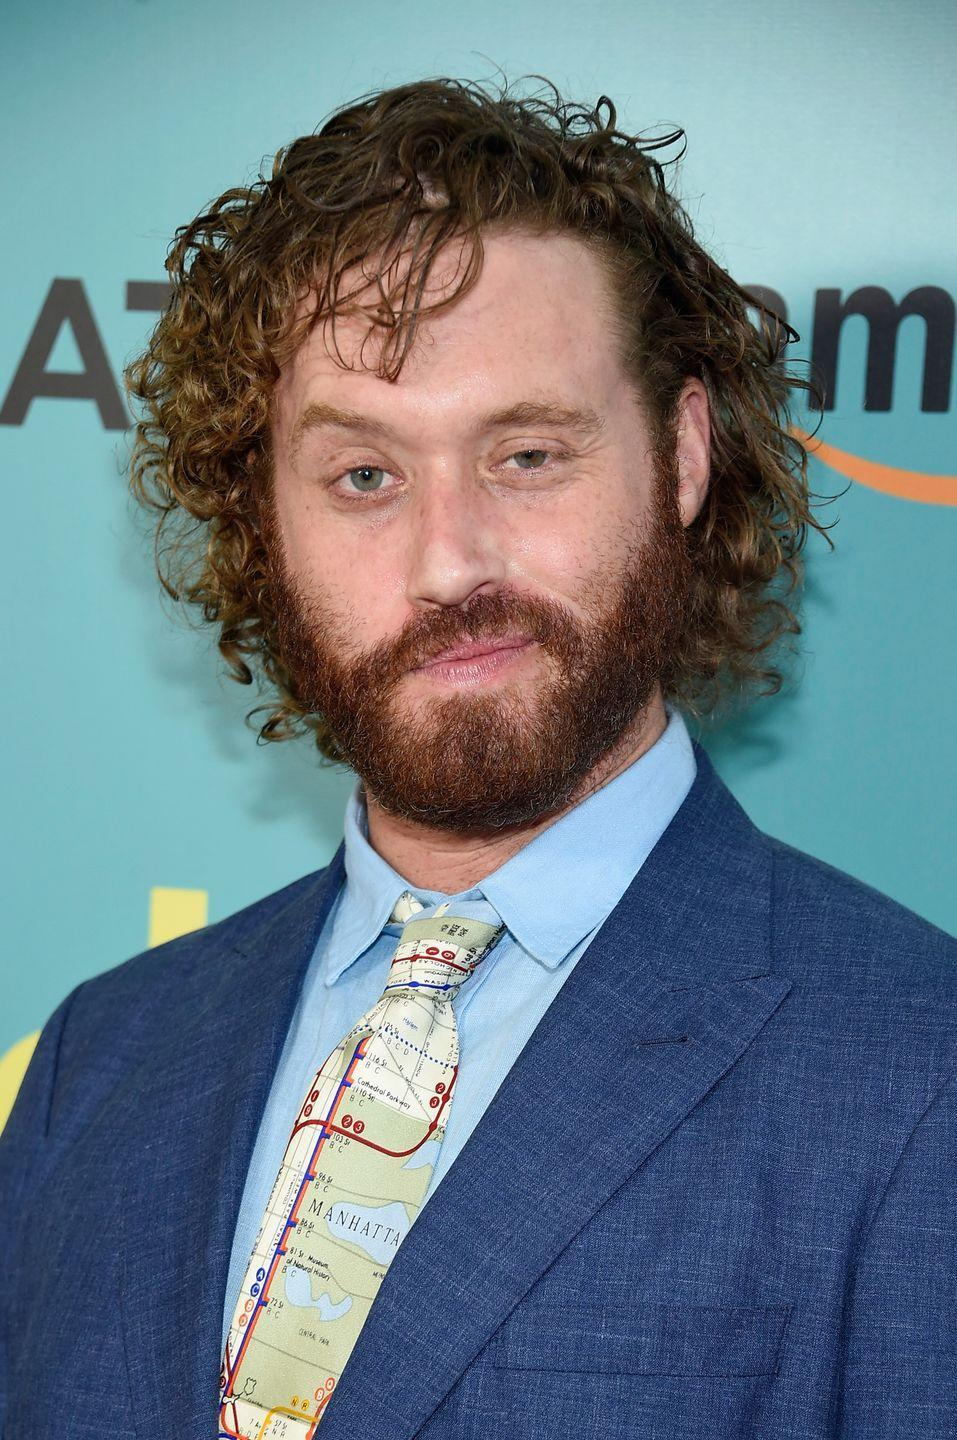 "<p>Comedian T.J. Miller had been a major character in <em>Silicon Valley </em>since the beginning. So when Erlich Bachman was assumed dead in the show's fourth season, fans were left reeling. The show's executives made the decision for Miller's departure <a href=""https://www.hollywoodreporter.com/live-feed/tj-miller-says-leaving-silicon-valley-was-like-a-breakup-1016573"" rel=""nofollow noopener"" target=""_blank"" data-ylk=""slk:citing the actor's difficulties on set"" class=""link rapid-noclick-resp"">citing the actor's difficulties on set</a>. They offered him a multi-episode arc to leave, but <a href=""https://www.vulture.com/2018/03/the-real-story-behind-t-j-millers-silicon-valley-exit.html"" rel=""nofollow noopener"" target=""_blank"" data-ylk=""slk:Miller declined"" class=""link rapid-noclick-resp"">Miller declined</a>, which is why Erlich's finale scene was so blunt.</p>"